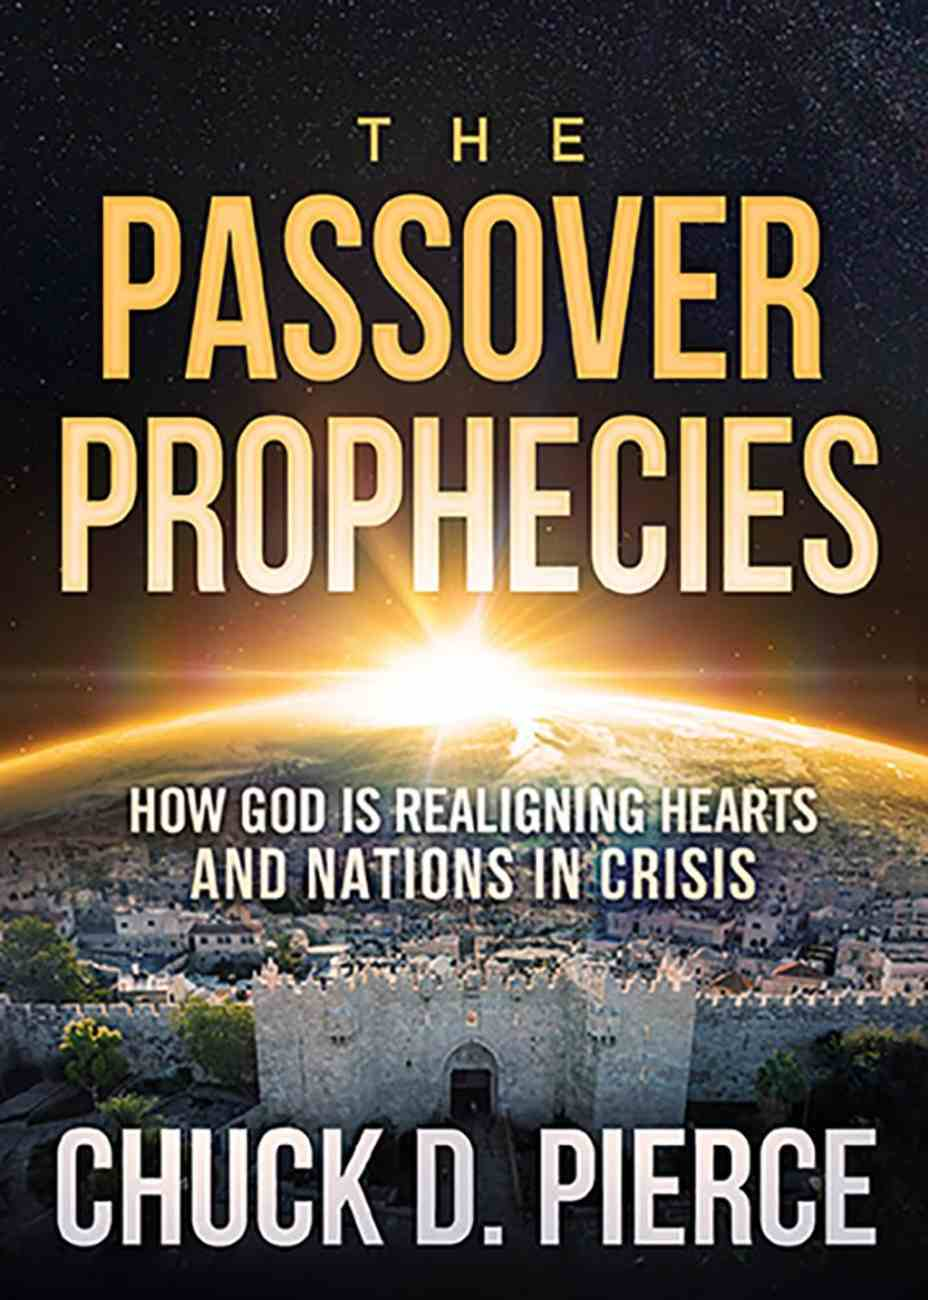 The Passover Prophecies: How God is Realigning Hearts and Nations in Crisis Paperback